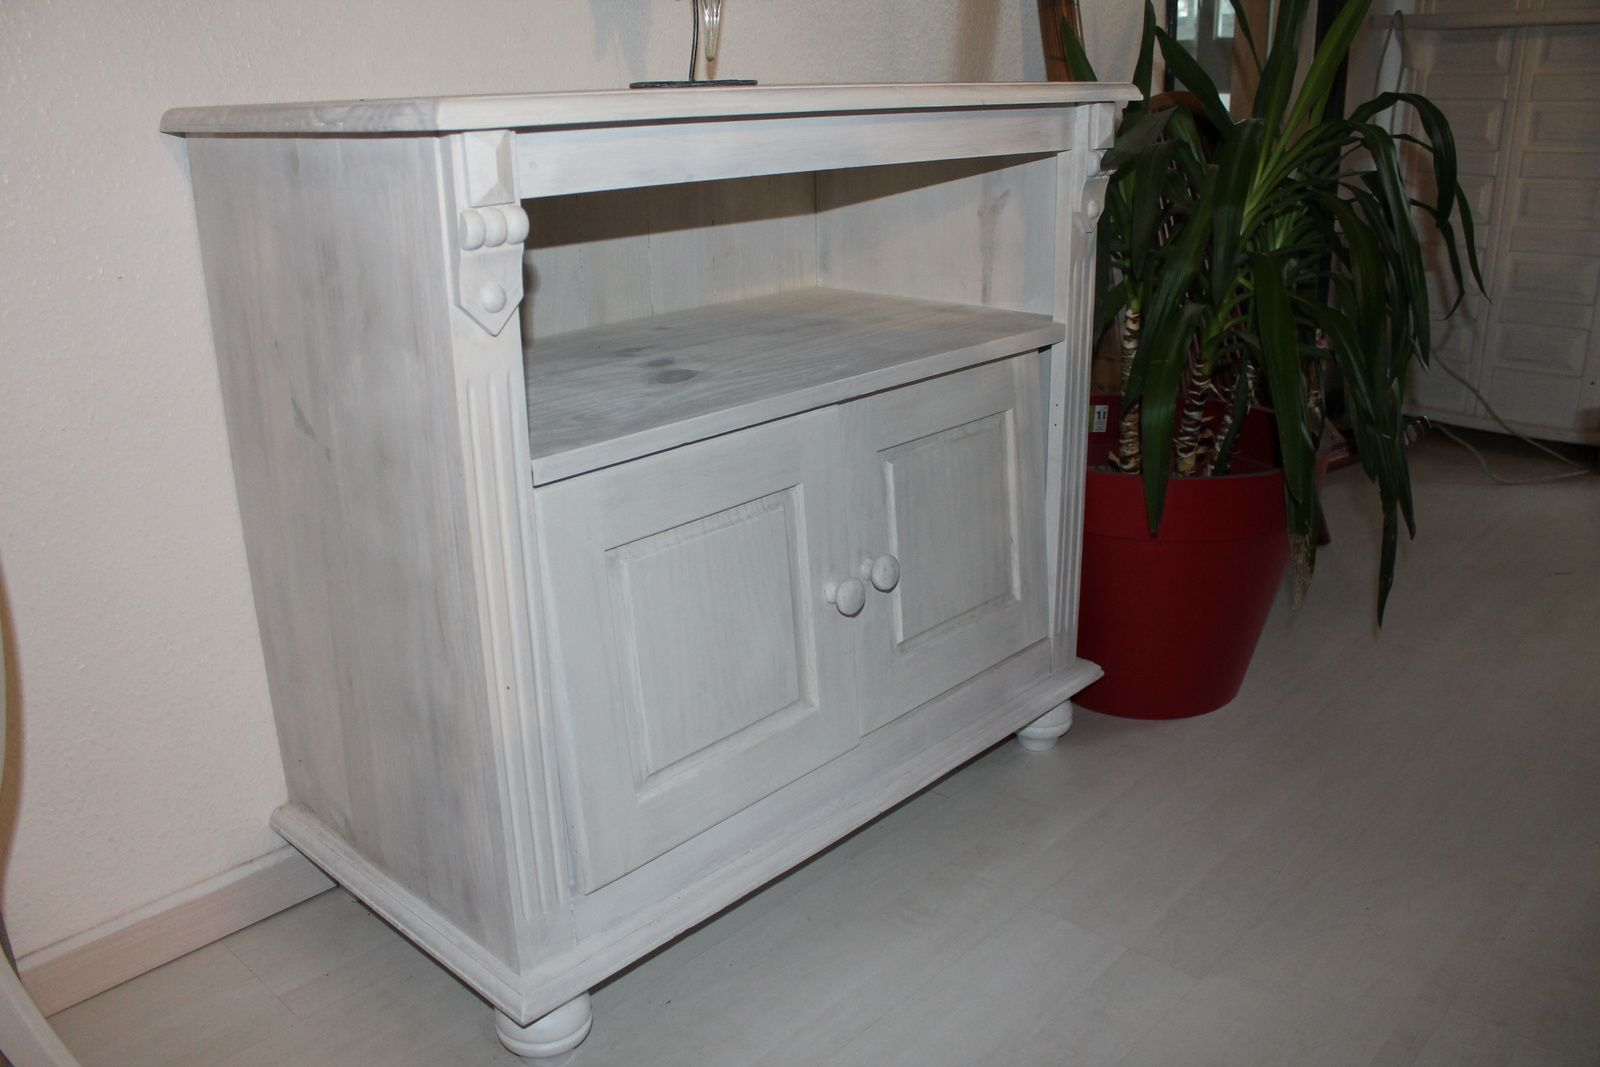 Ensemble Table Basse Meuble Tv Cin Ma 30 S Dieloart # Ensemble Meuble Tv Table Basse